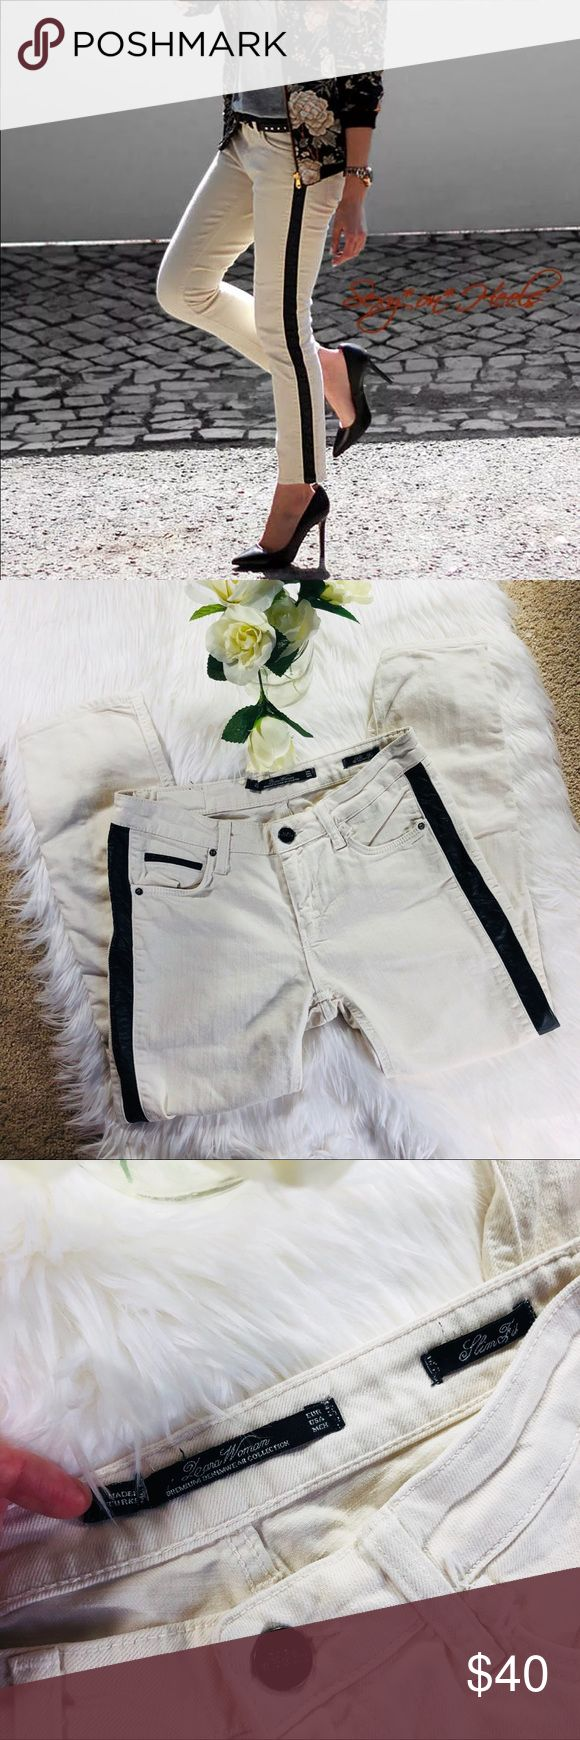 Zara Woman Cream with Leather stripe Trouser pants Zara Cream with Leather stripe jeans. I am unable to see size tag but these fit like a 0-2. See measurements to ensure these will fit. Great condition. Make a bundle and offer to save! :) Zara Jeans Ankle & Cropped